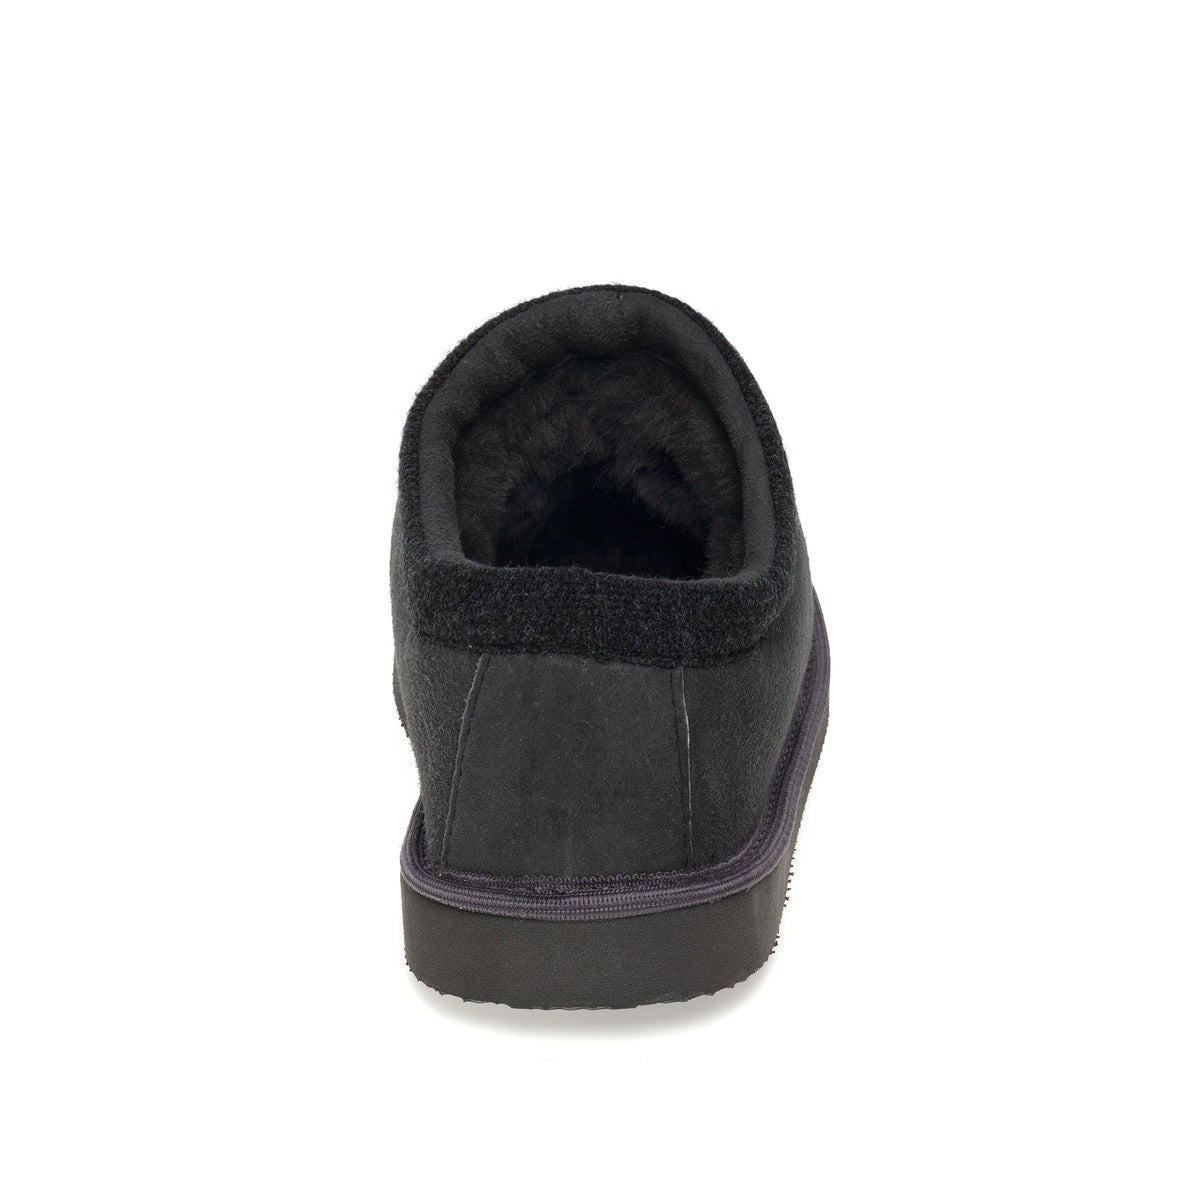 Mhor Sheepskin Slippers - Graphite